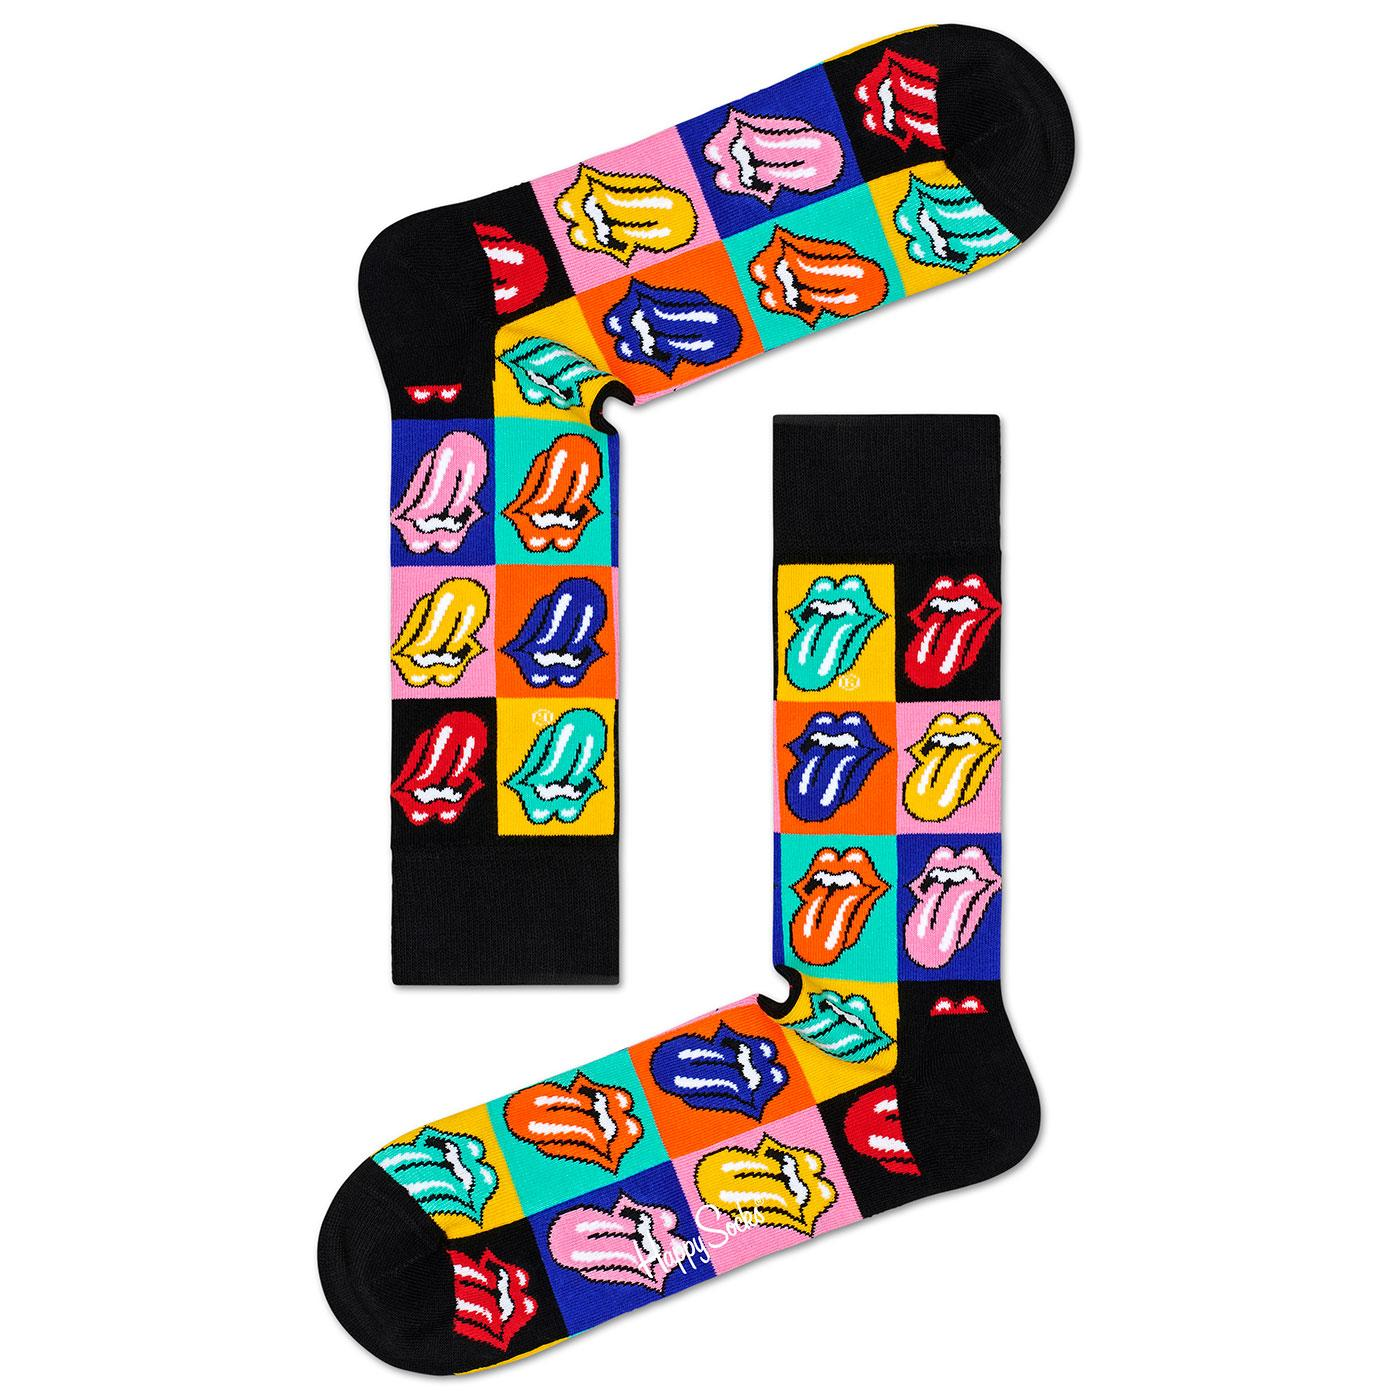 HAPPY SOCKS ROLLING STONES Jumpin Jack Flash Socks